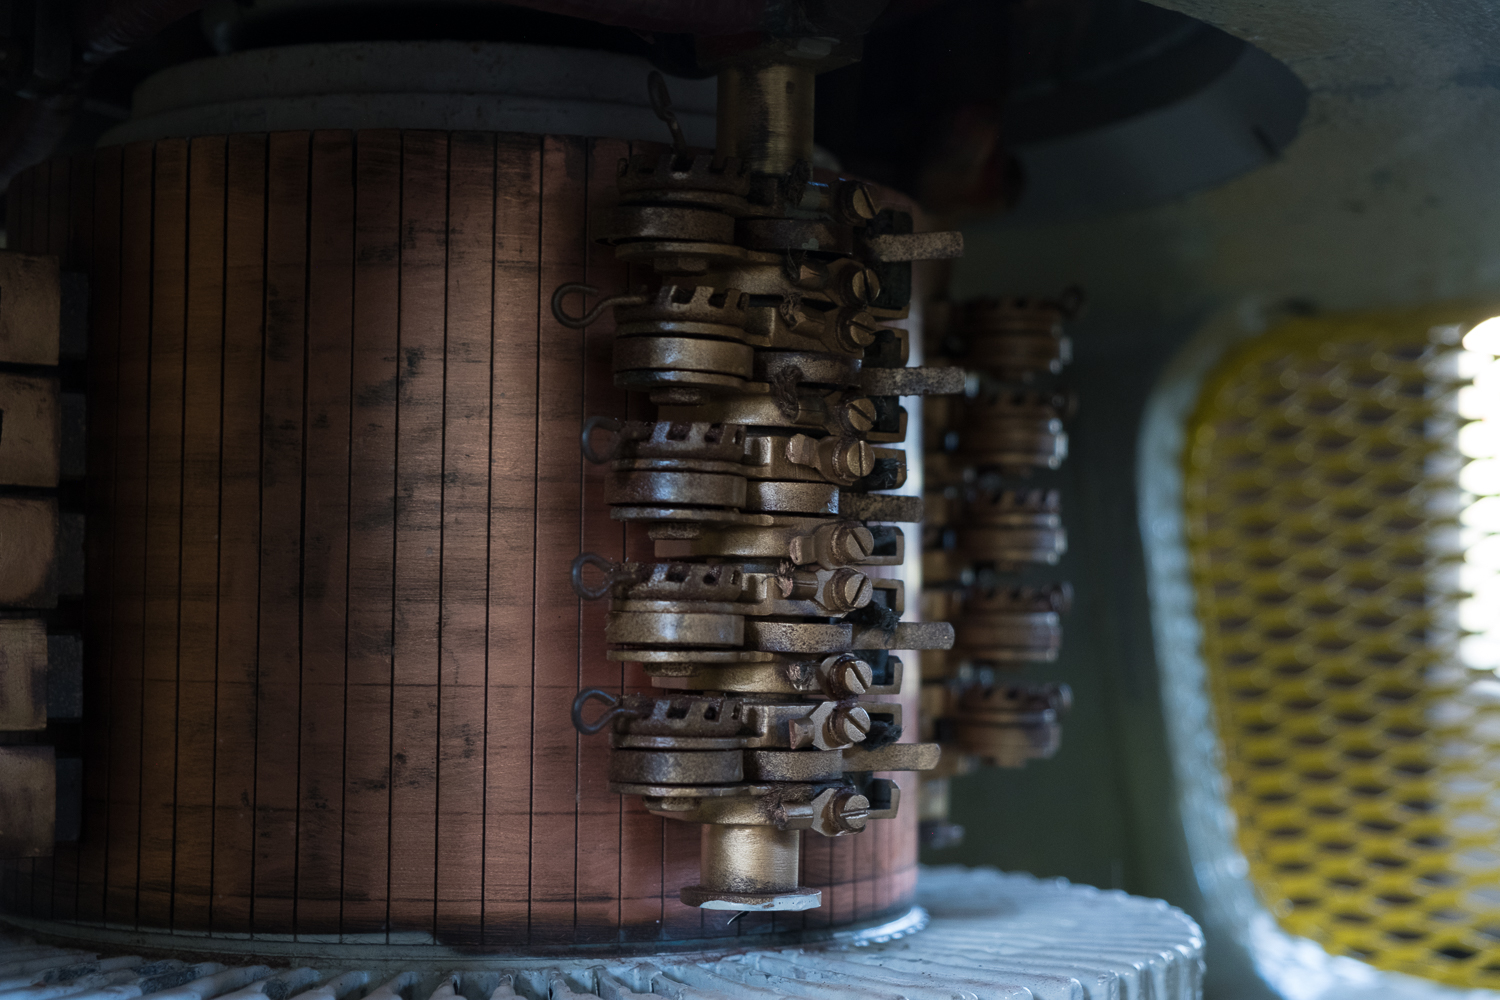 A rare look, inside one of the giant Daleks, a cyber punks dream